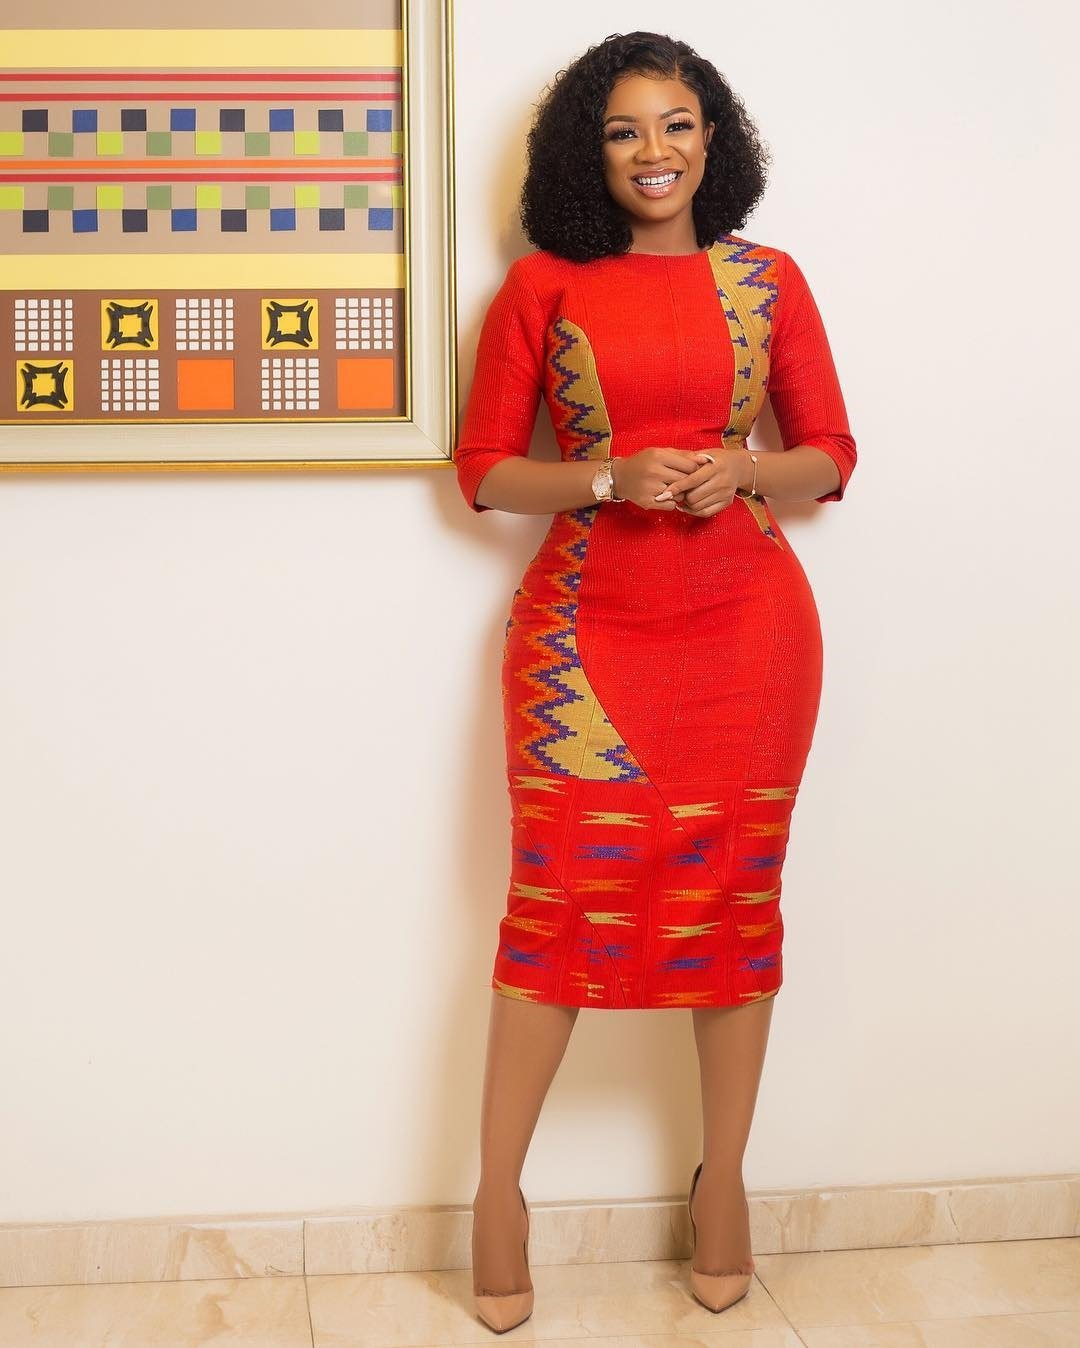 serwaa amihere 2 - Serwaa Amihere releases stunning photos to celebrate her 29th birthday